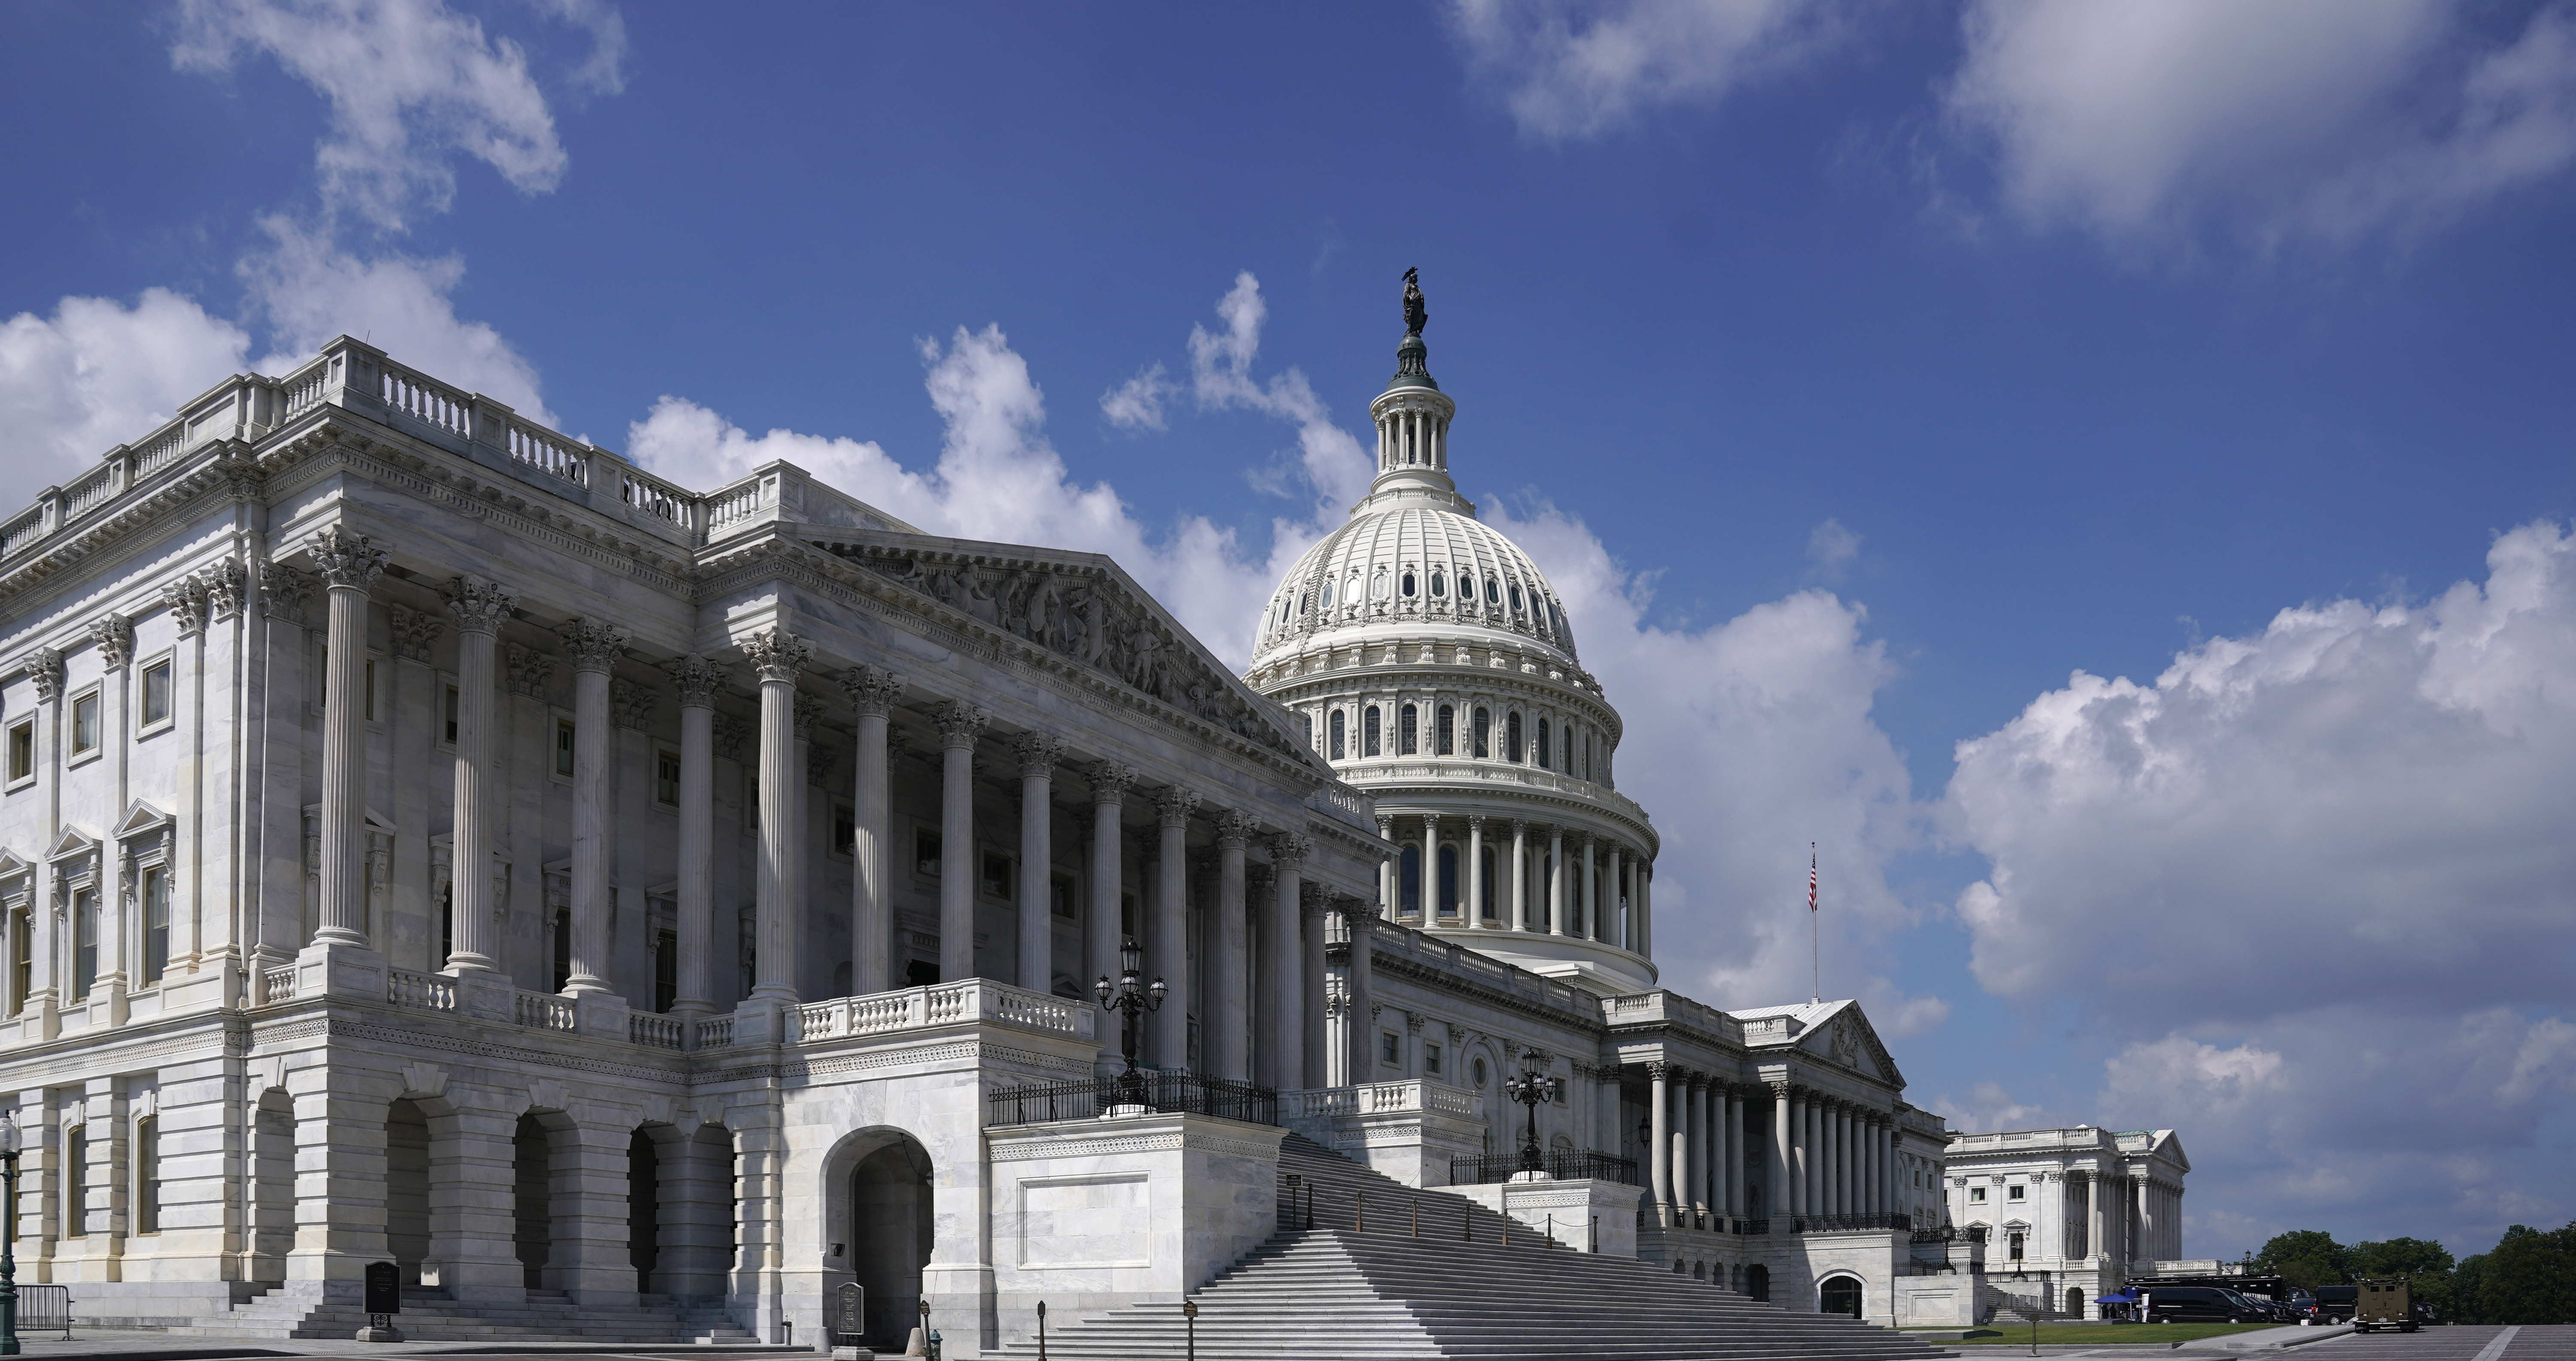 The exterior of the House wing of the U.S. Capitol is shown.